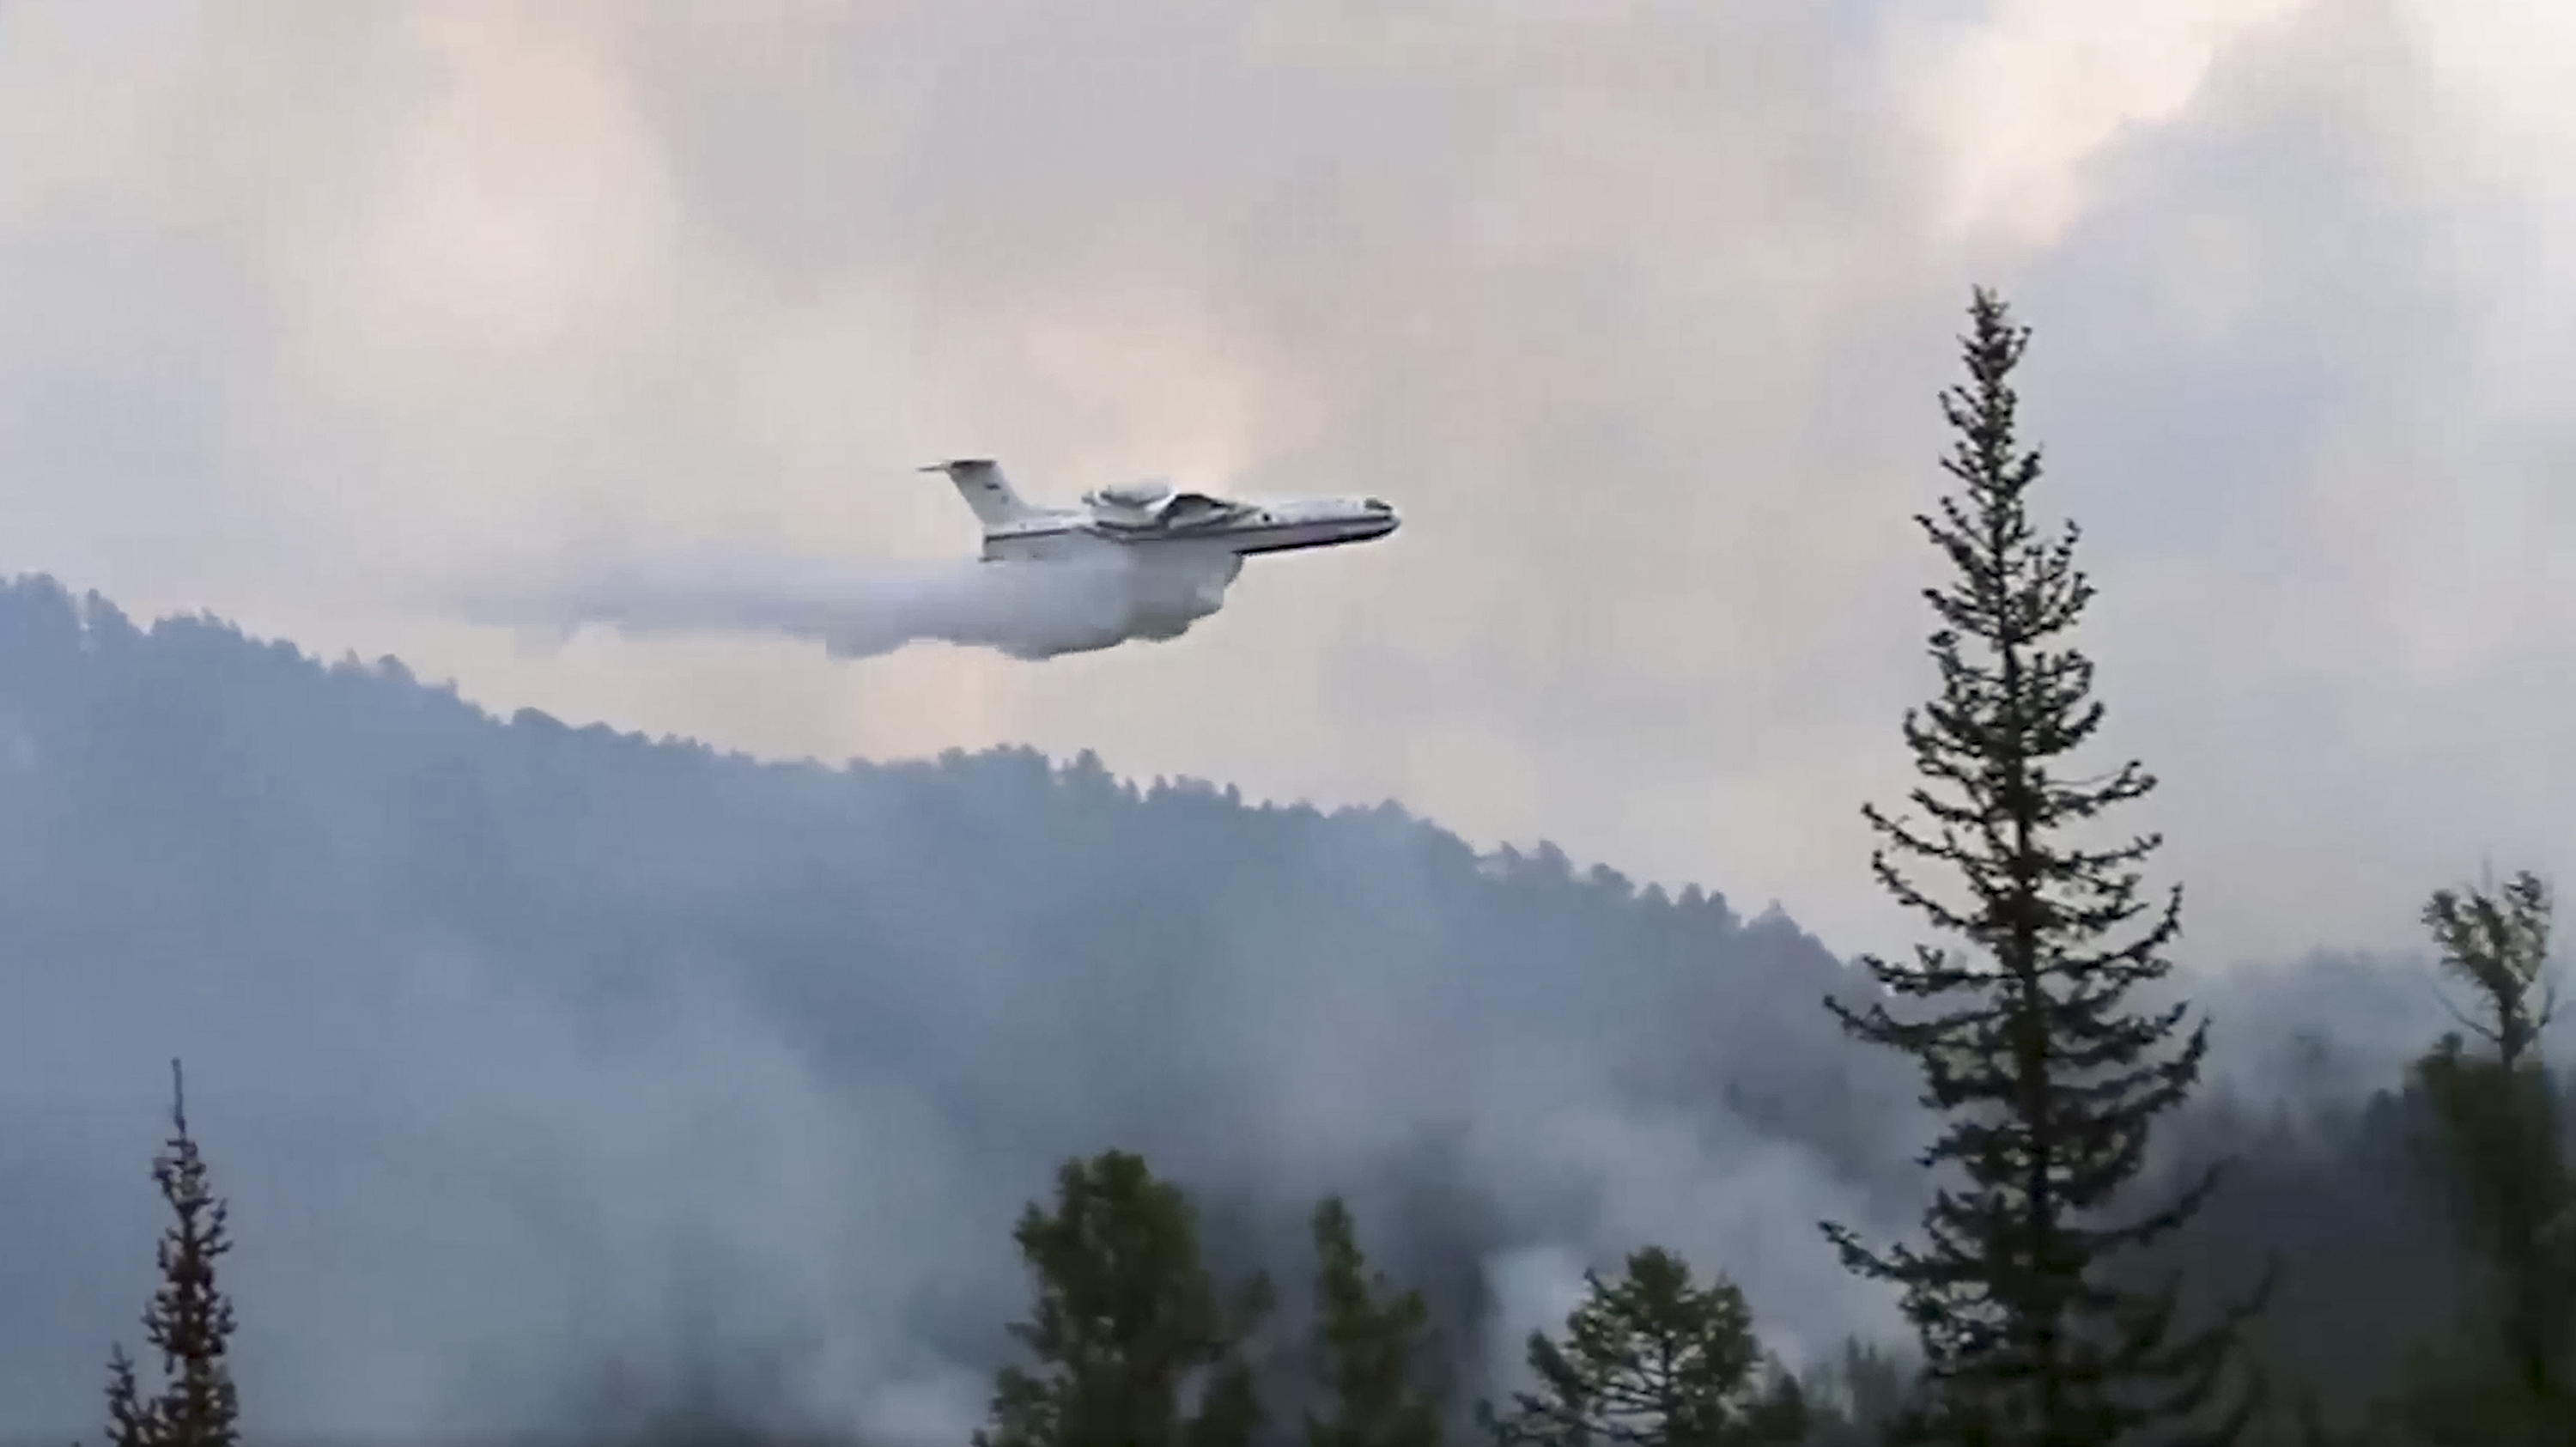 A Russian Emergency Ministry multipurpose amphibious aircraft releasing water to extinguish the fire in the Trans-Baikal National Park in Buryatia, southern Siberia, Russia, on July 9, 2020.